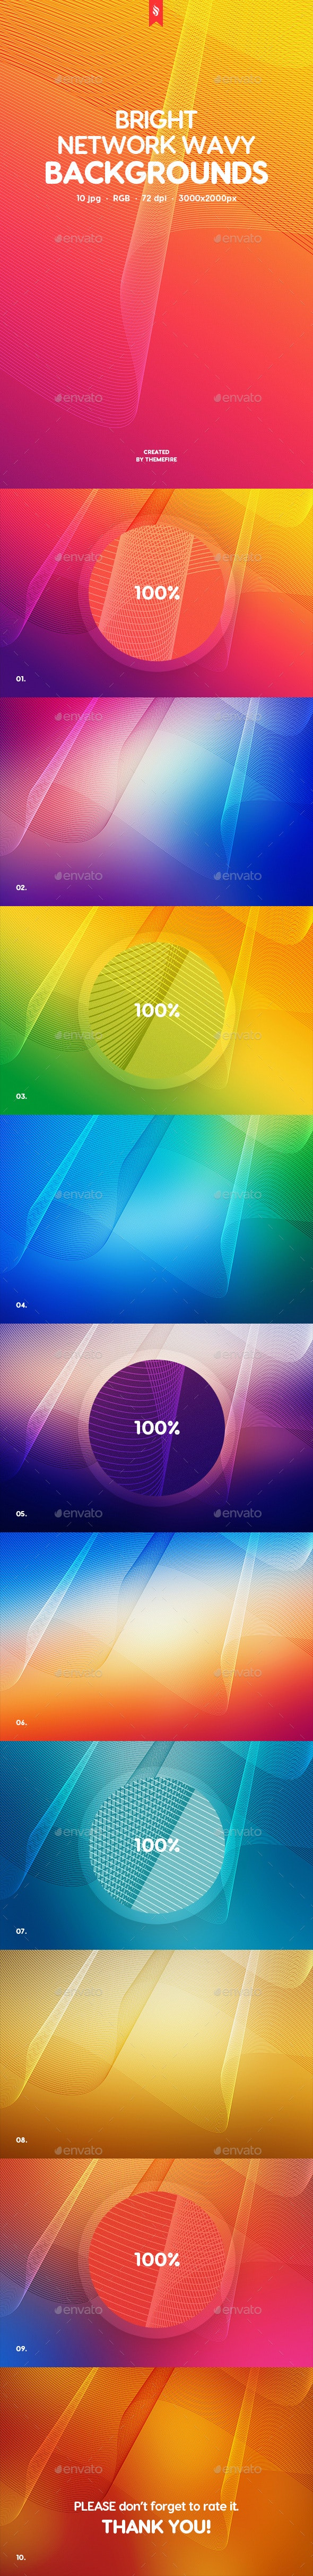 Abstract Bright Network Wavy Backgrounds - Abstract Backgrounds